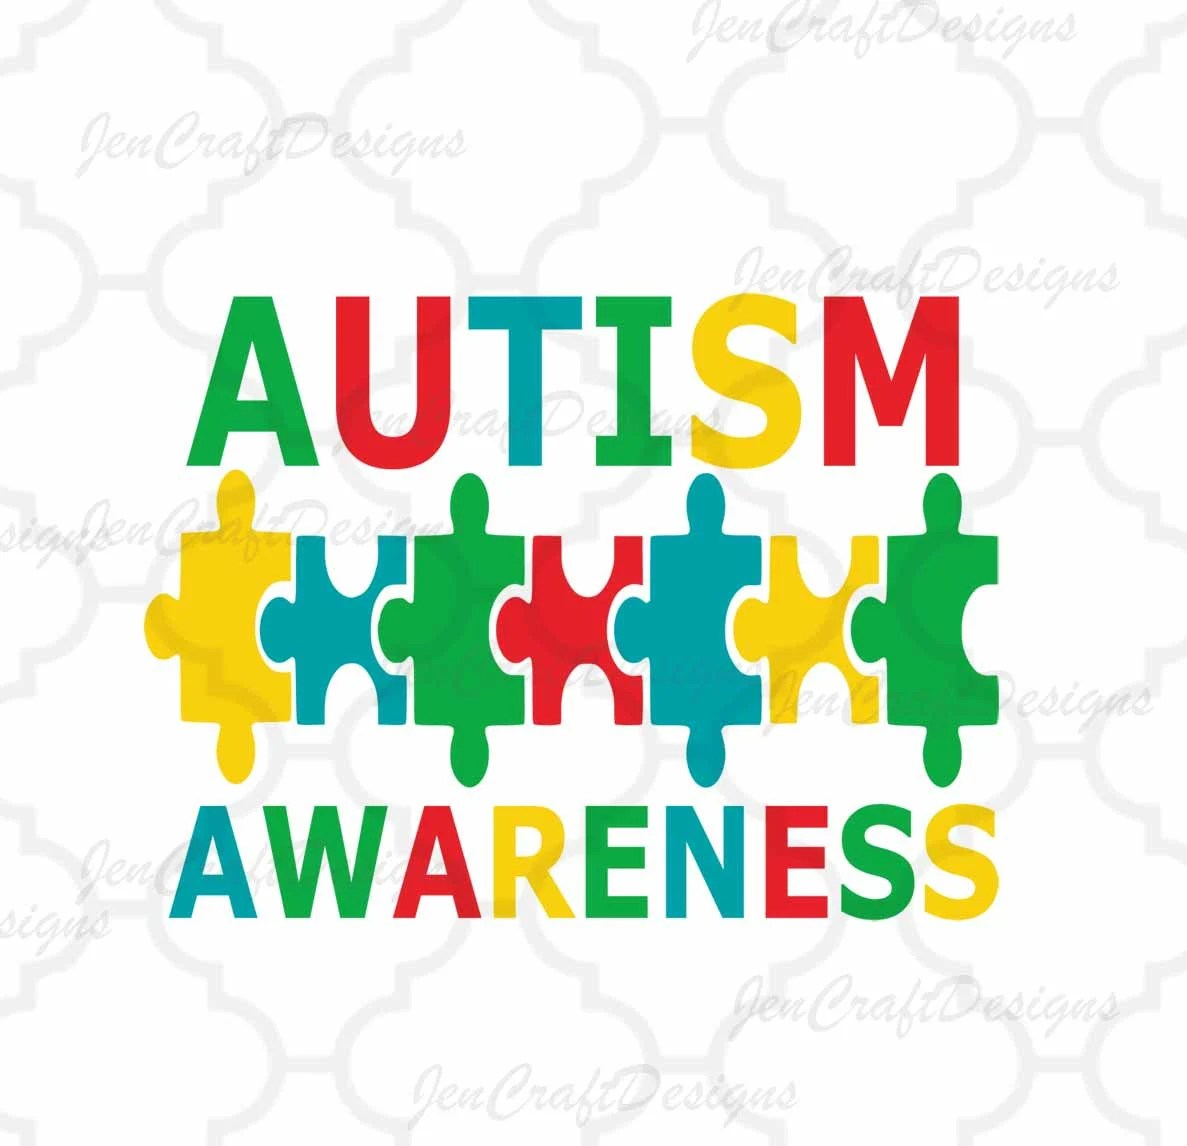 Autism Awareness Svg Dxf Eps Amp Printable Puzzle